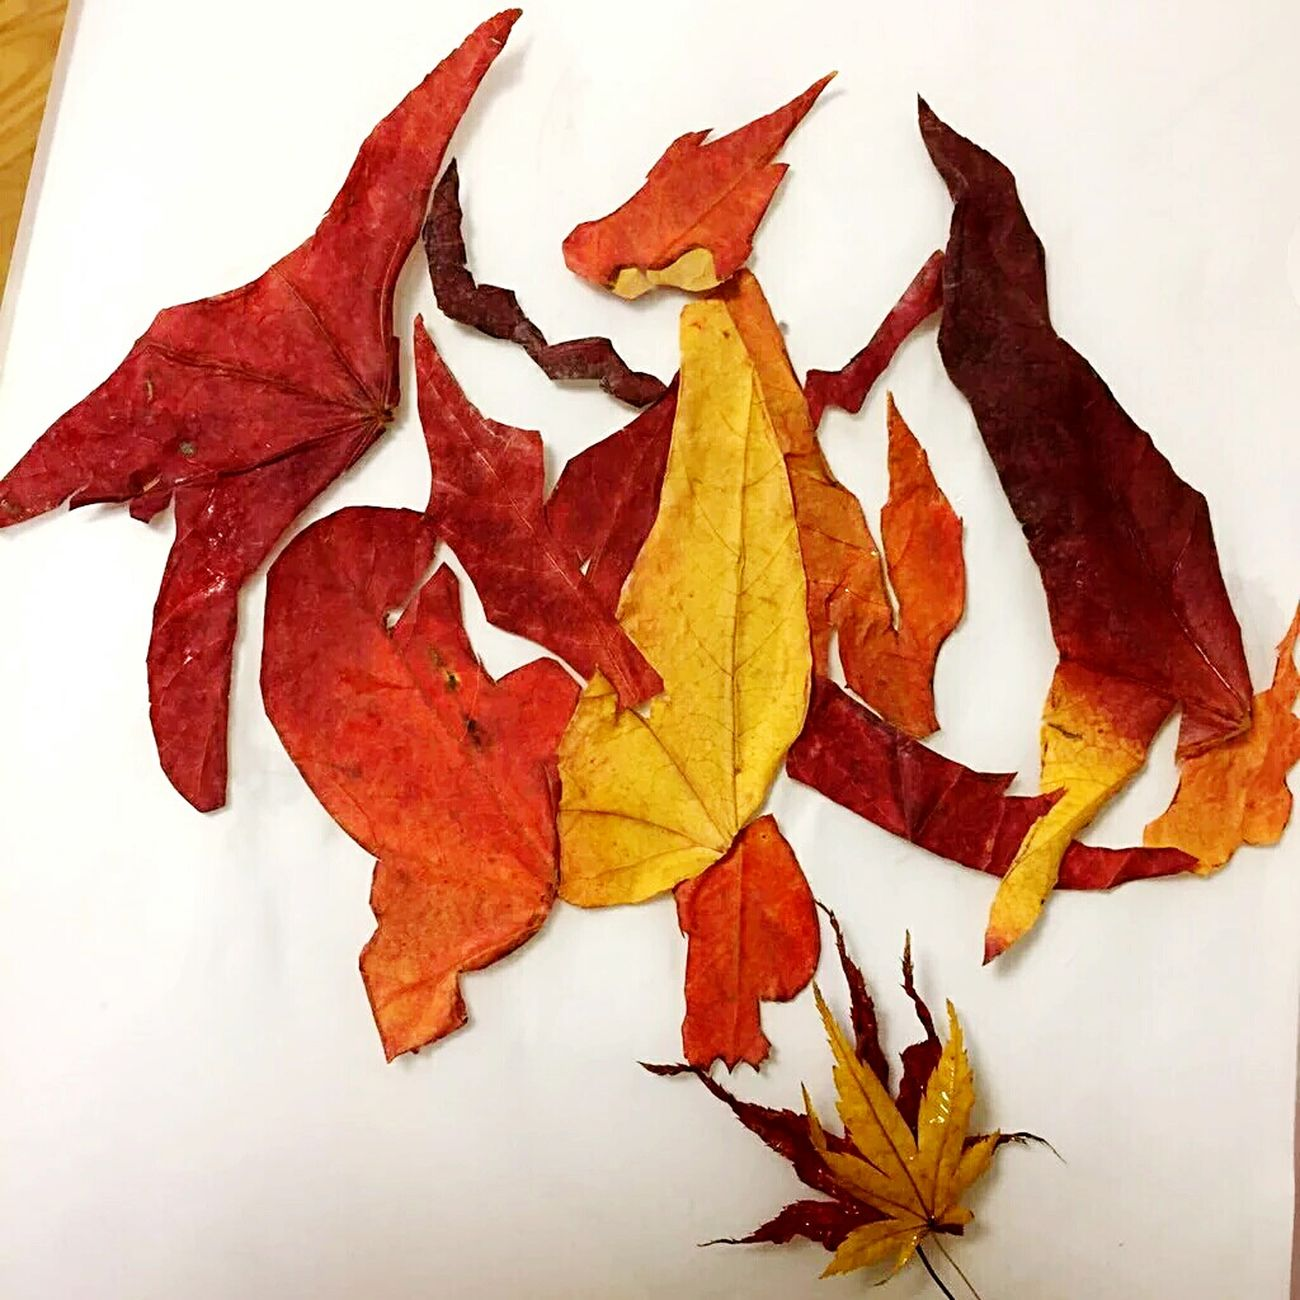 Repost. Credits to the owner. A Dragon made in leaves. Artsy Art Art, Drawing, Creativity Art Gallery Nature Nature_collection Dragon Phoenix Red Fire Nation Fire